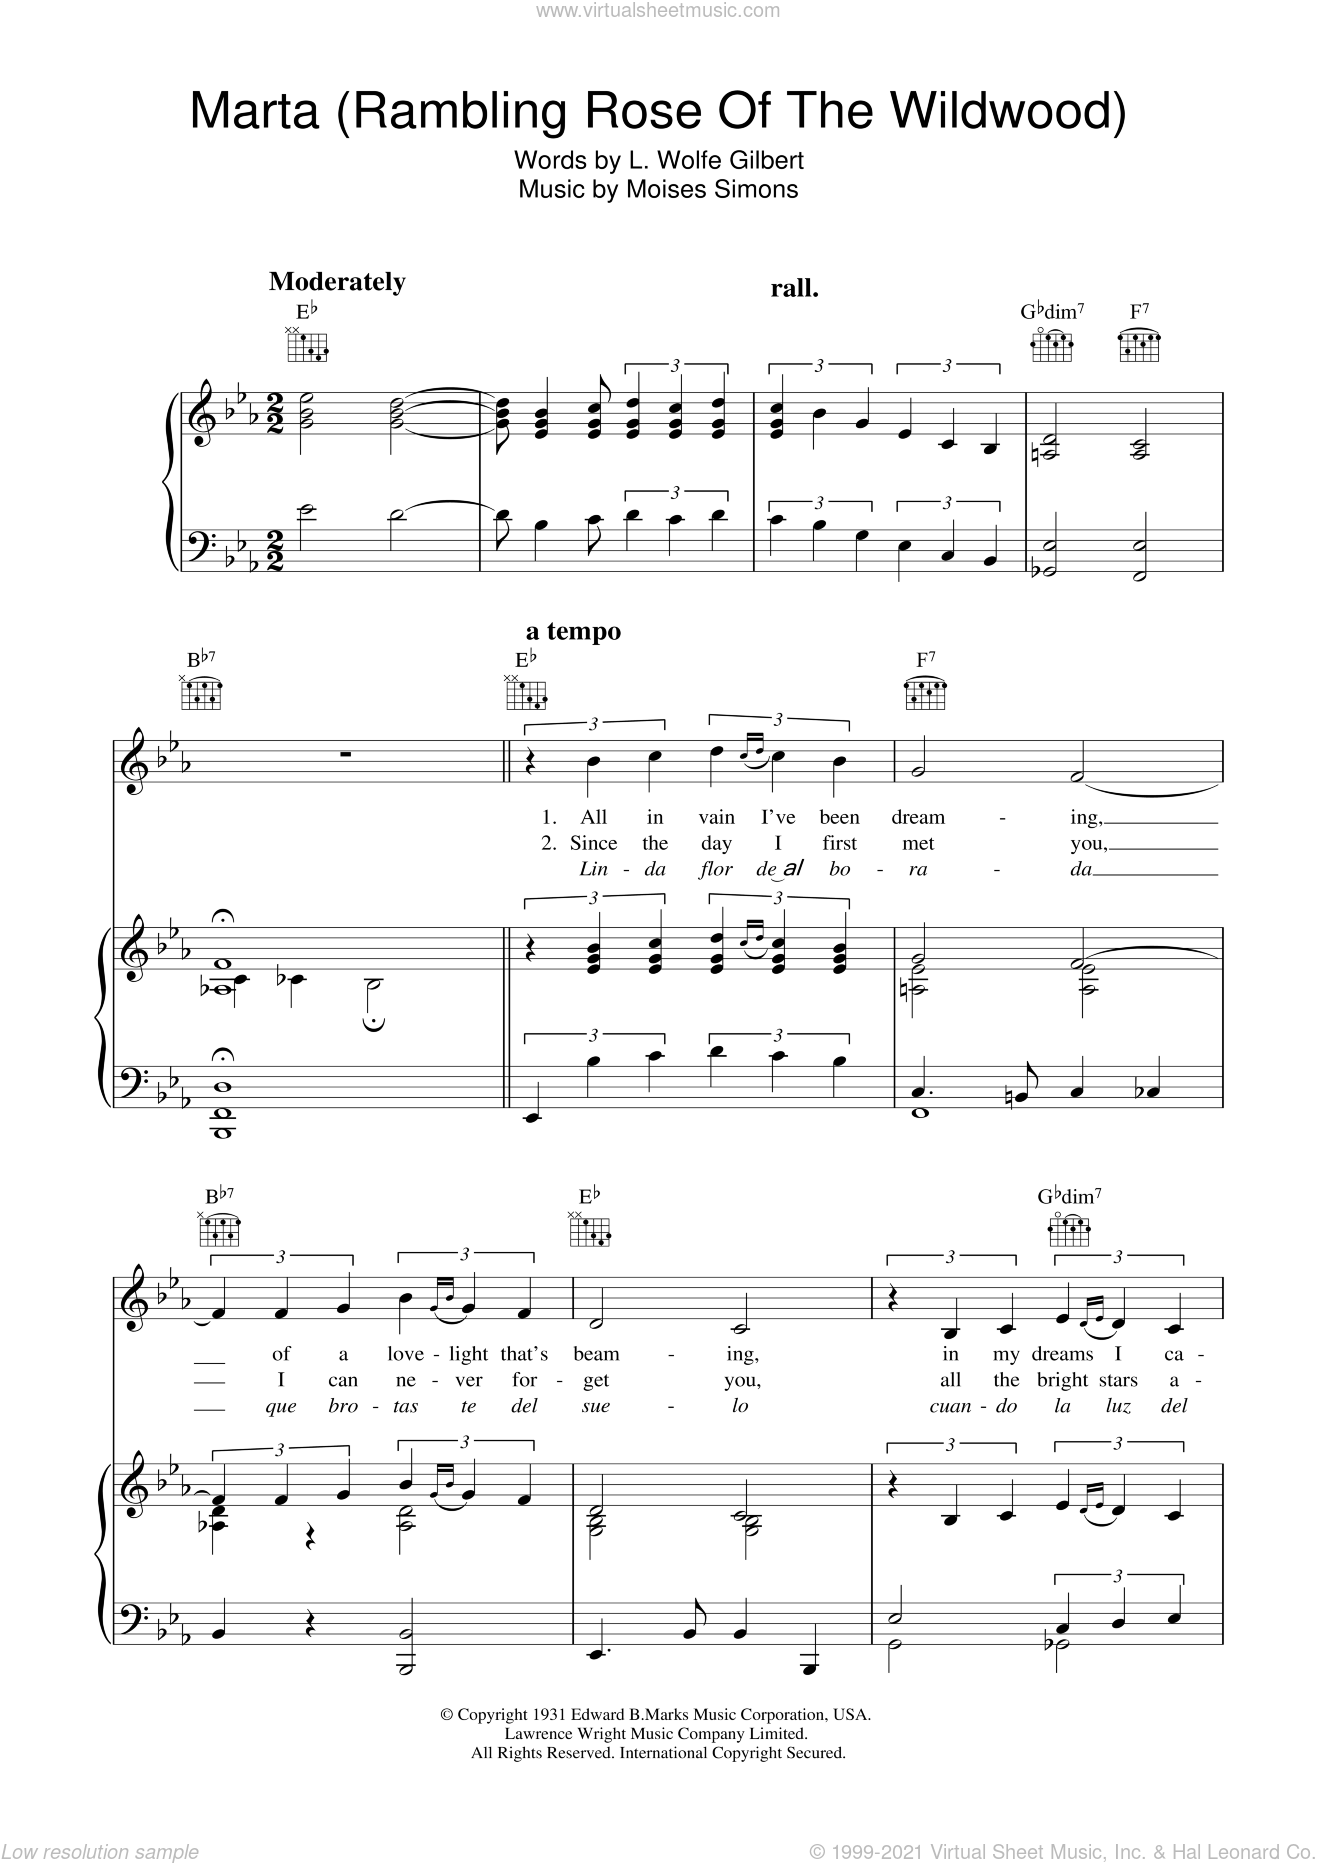 Marta (Rambling Rose Of The Wildwood) sheet music for voice, piano or guitar by Moises Simons, intermediate skill level